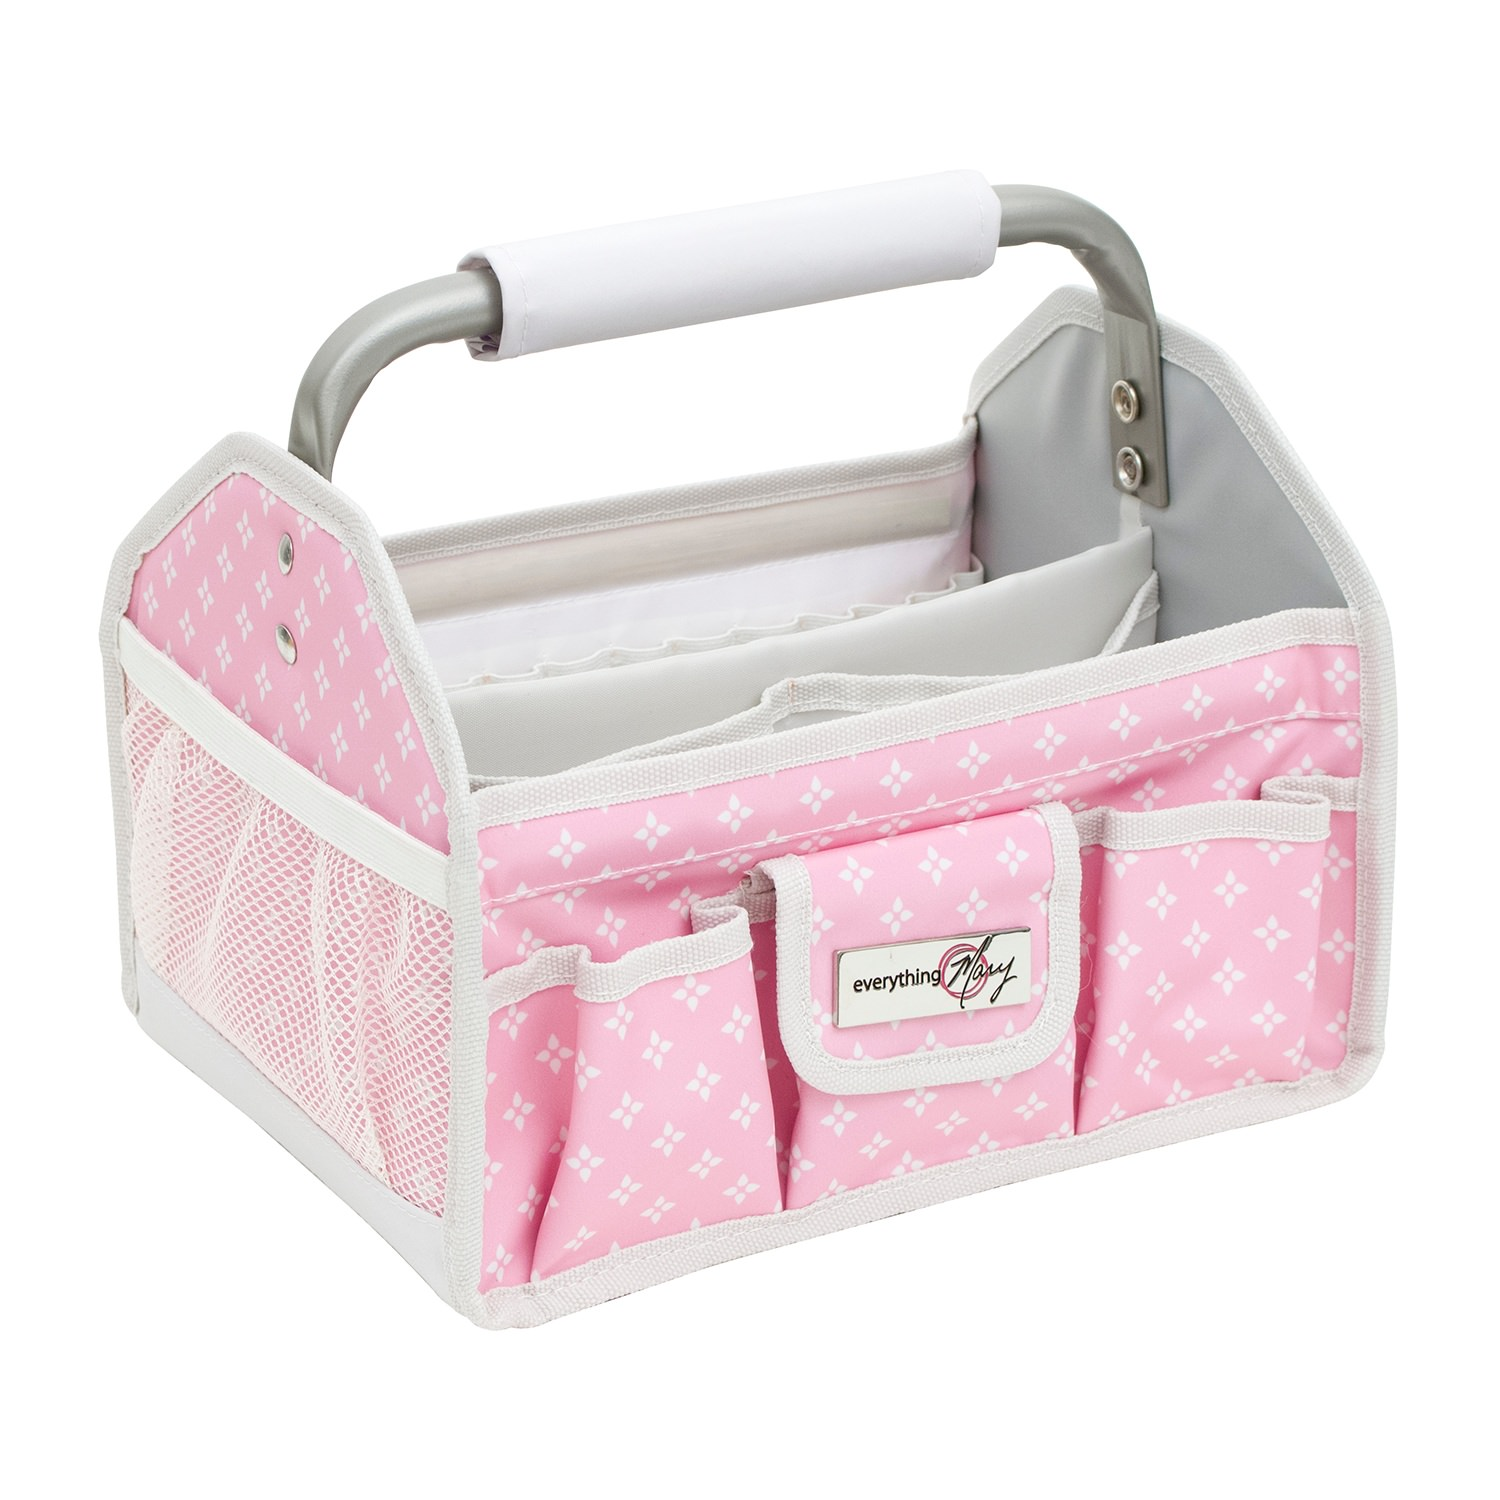 Craft Tool Box With Metal Handle Pink White 2018 Everything Mary